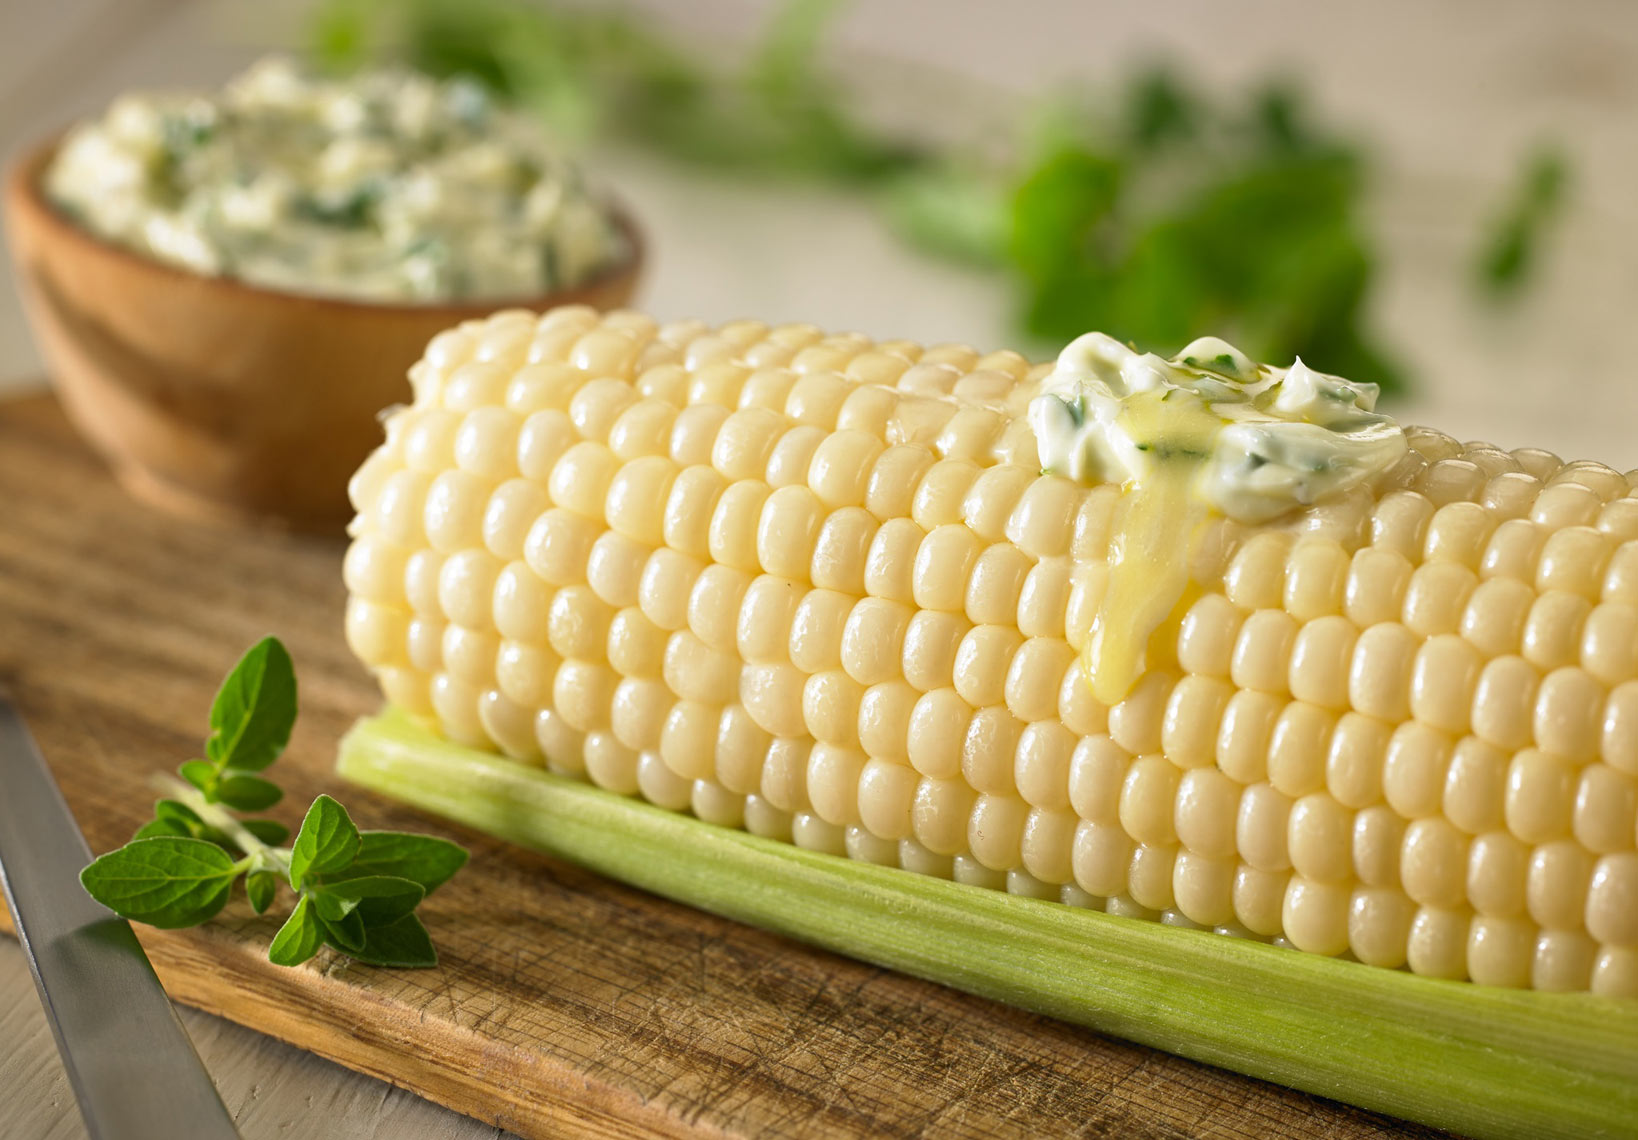 Corn on the cob/herbed butter melting on top/ramekin of herbed butter/food photography, InsideOut Studios